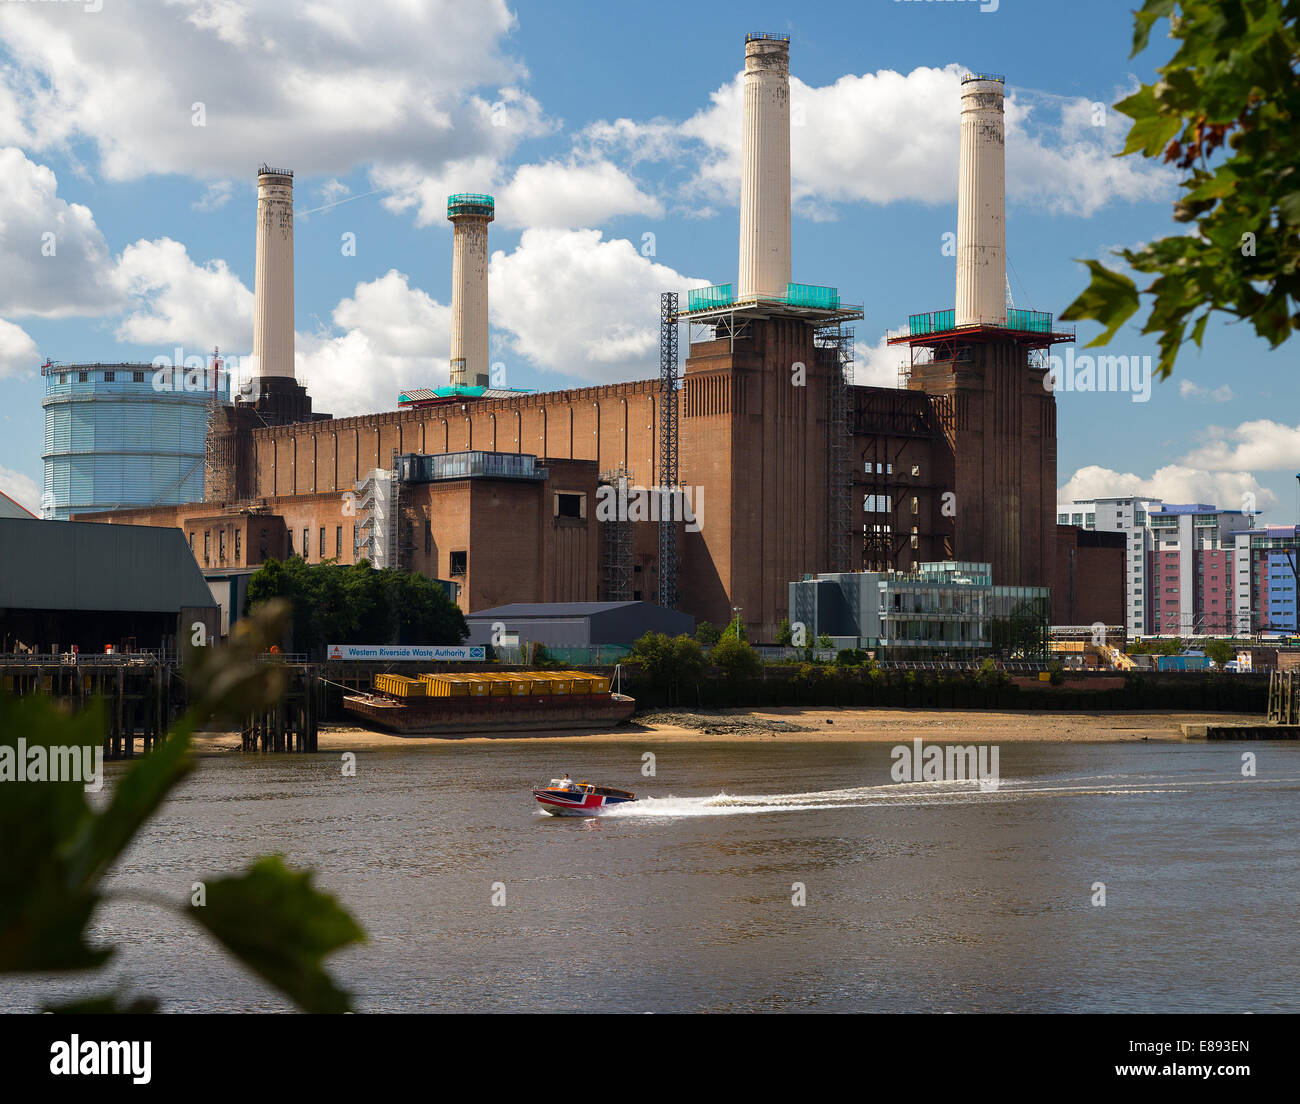 Battersea Power station designed by Sir Giles Gilbert Scott-opened in 1933.It was a coal fired power station,now - Stock Image